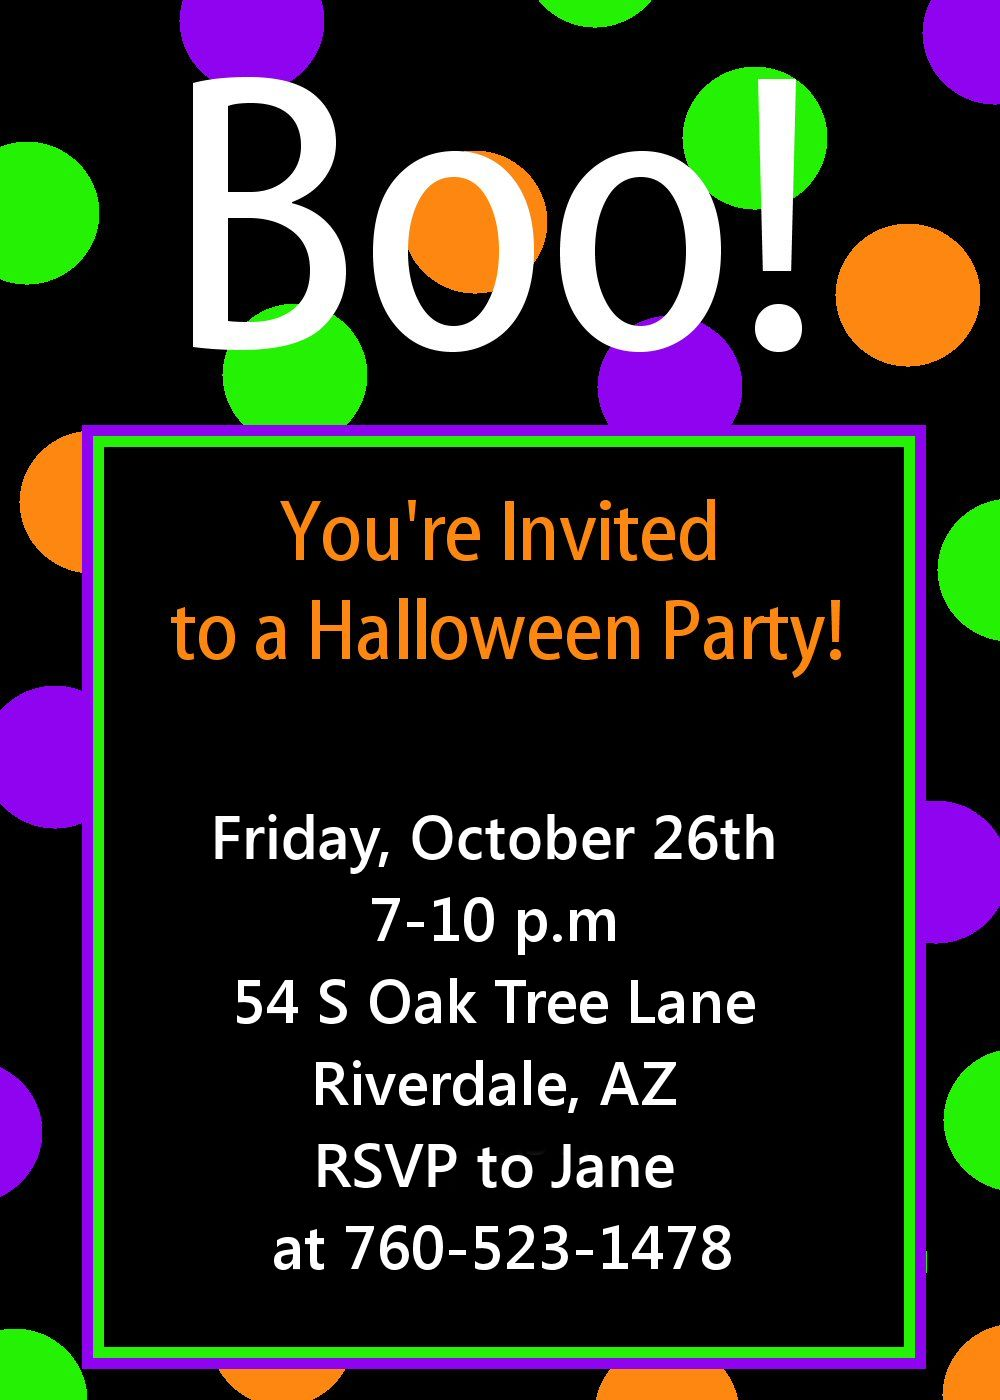 009 Awful Free Halloween Party Invitation Template Picture  Printable Birthday For Word DownloadFull